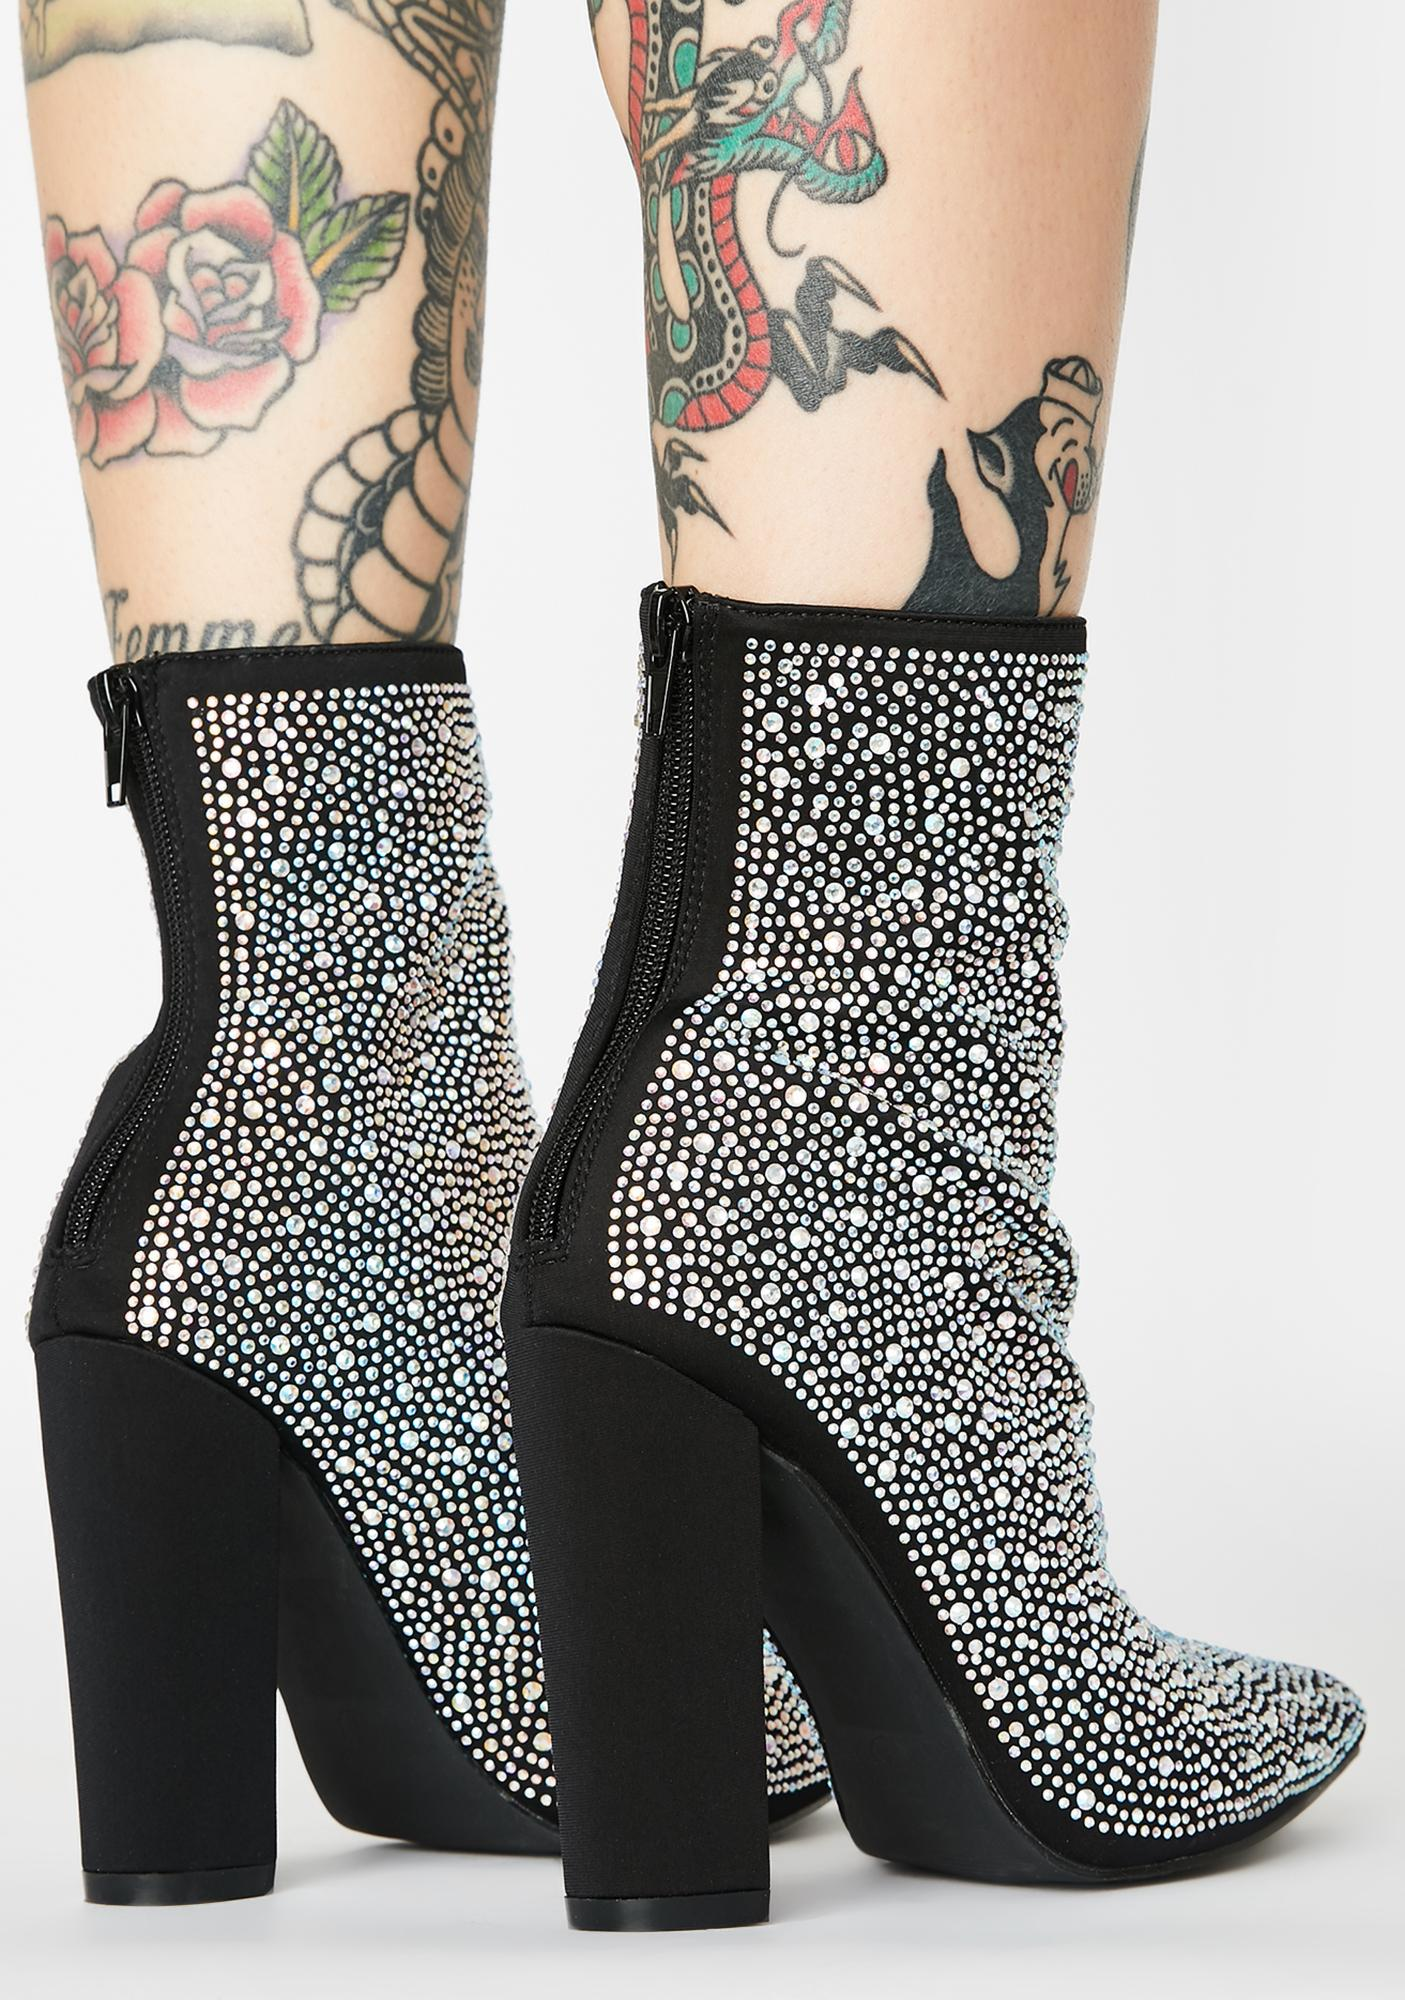 AZALEA WANG Don't Question The Path Rhinestone Booties